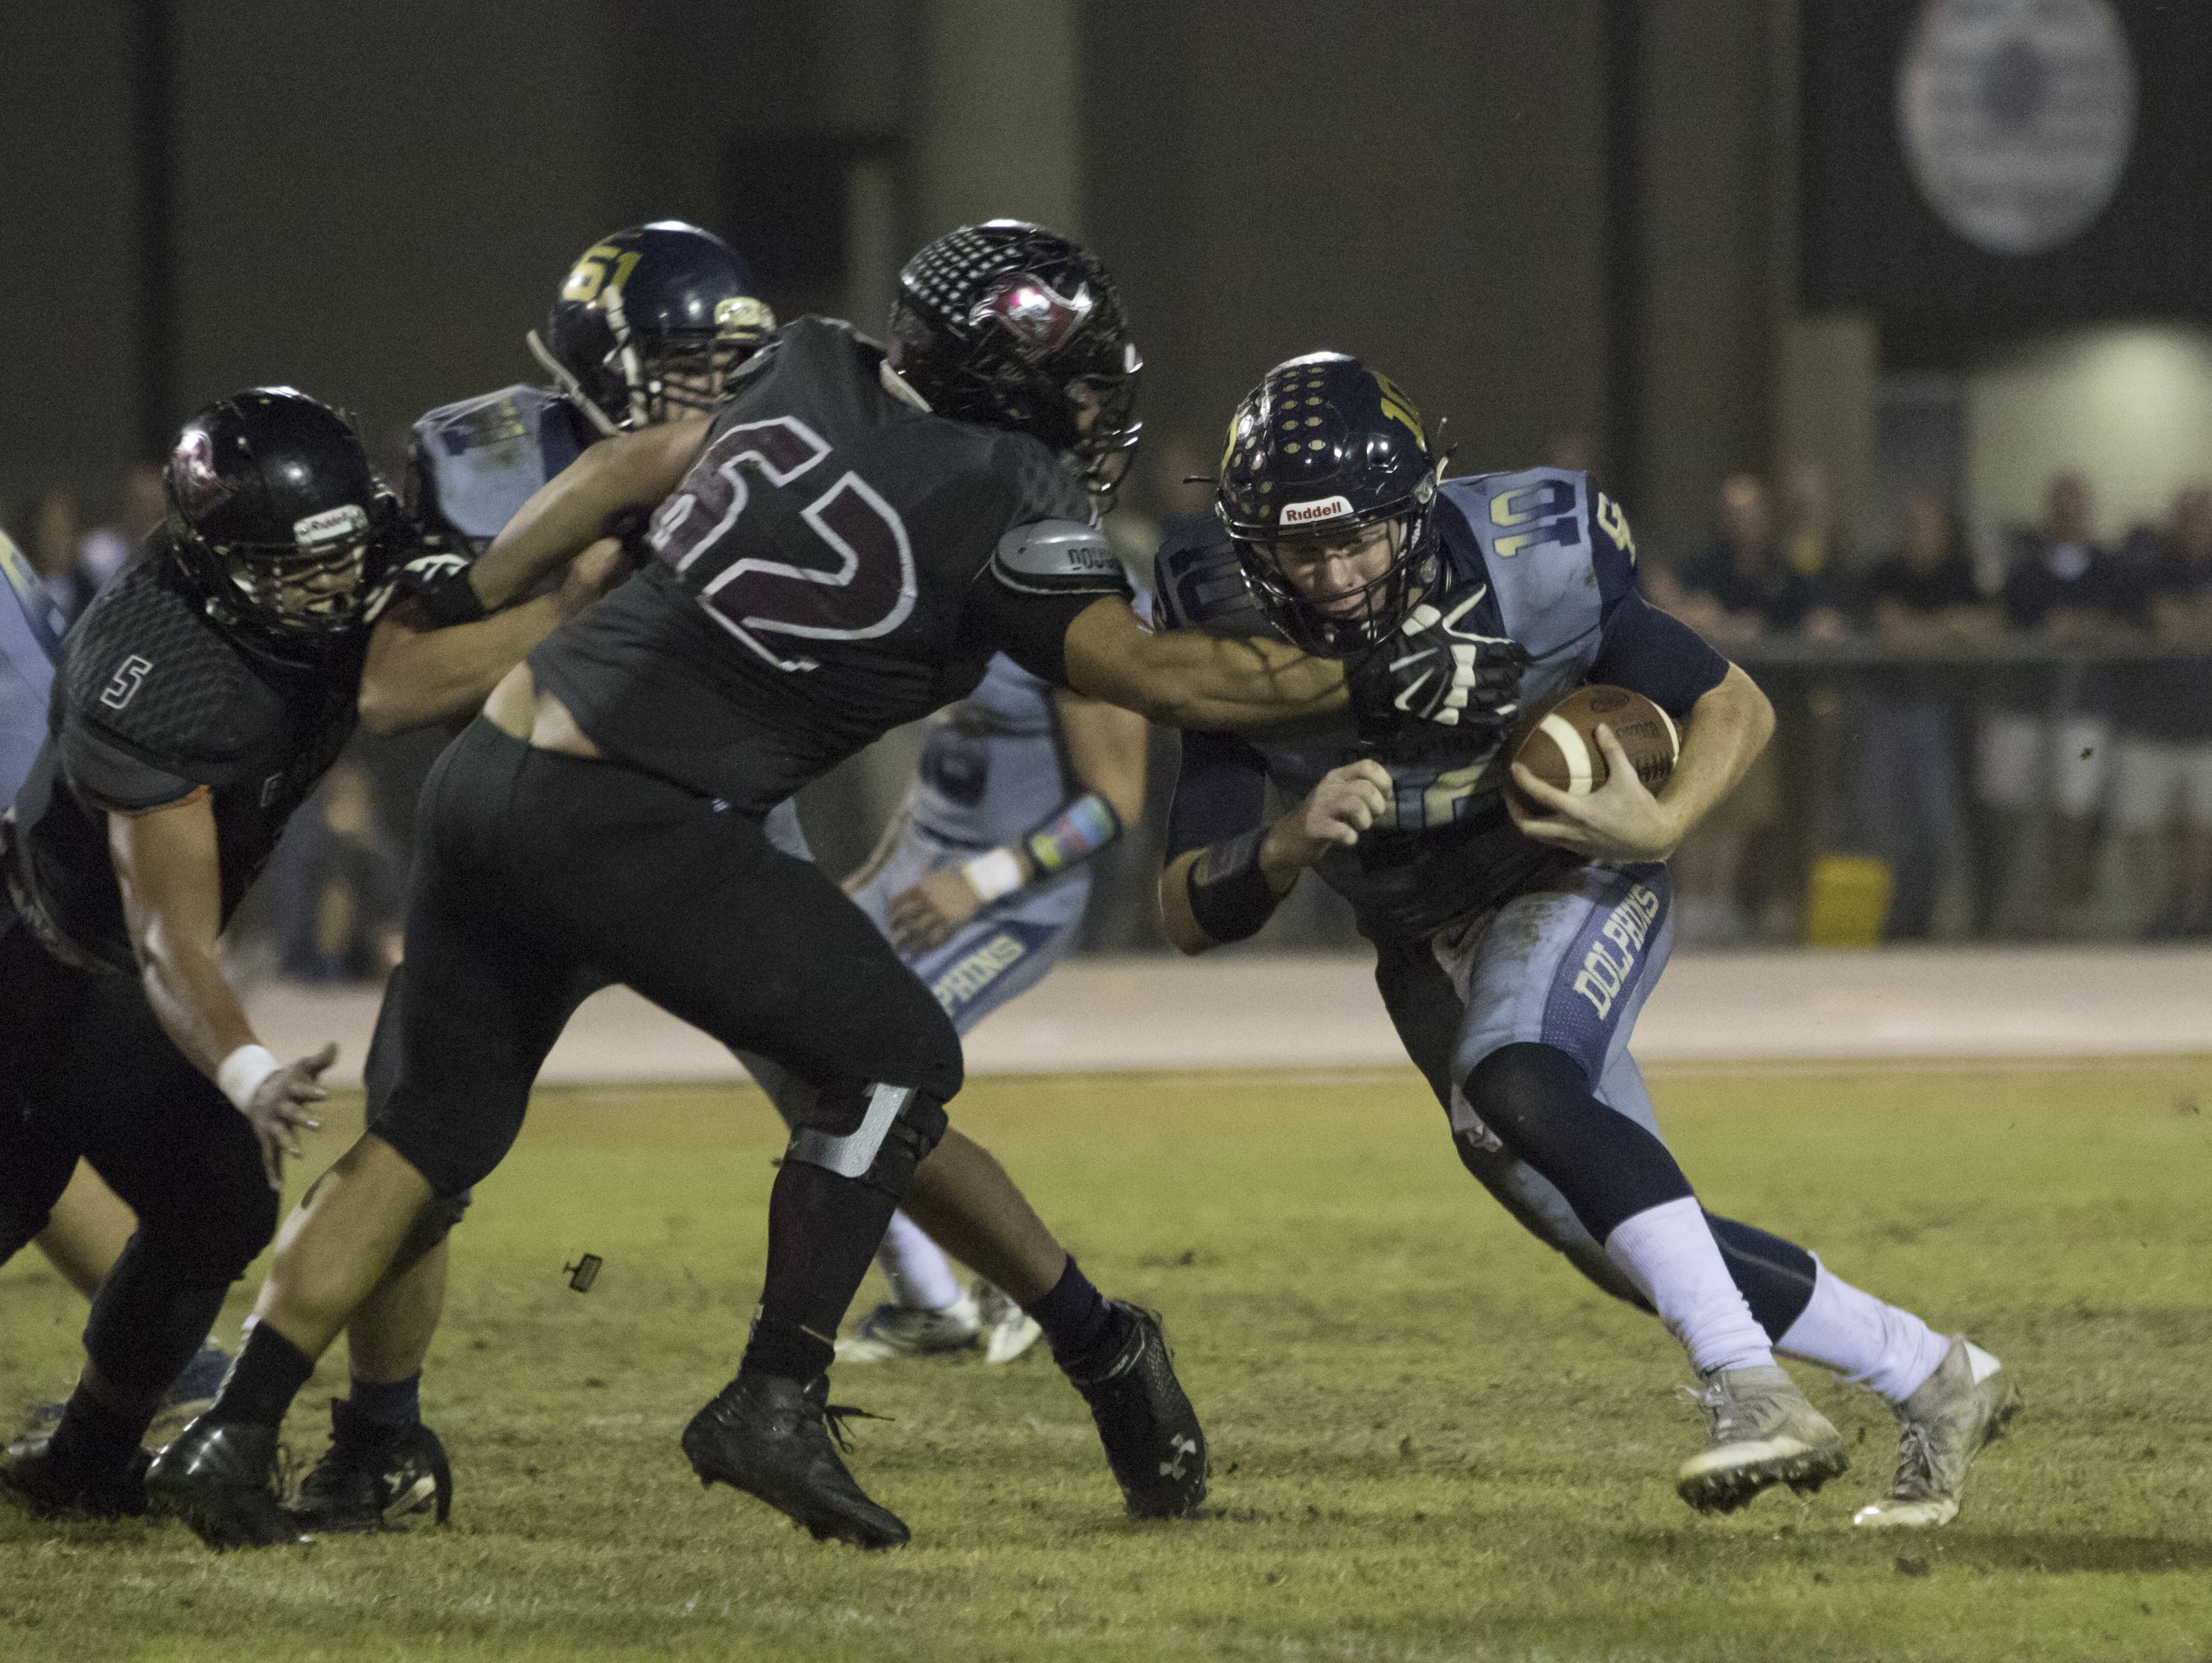 Quaterback Tyler Phelps (10) carries the ball during the Gulf Breeze vs Navarre football at Navarre High School on Friday, October 8, 2016.